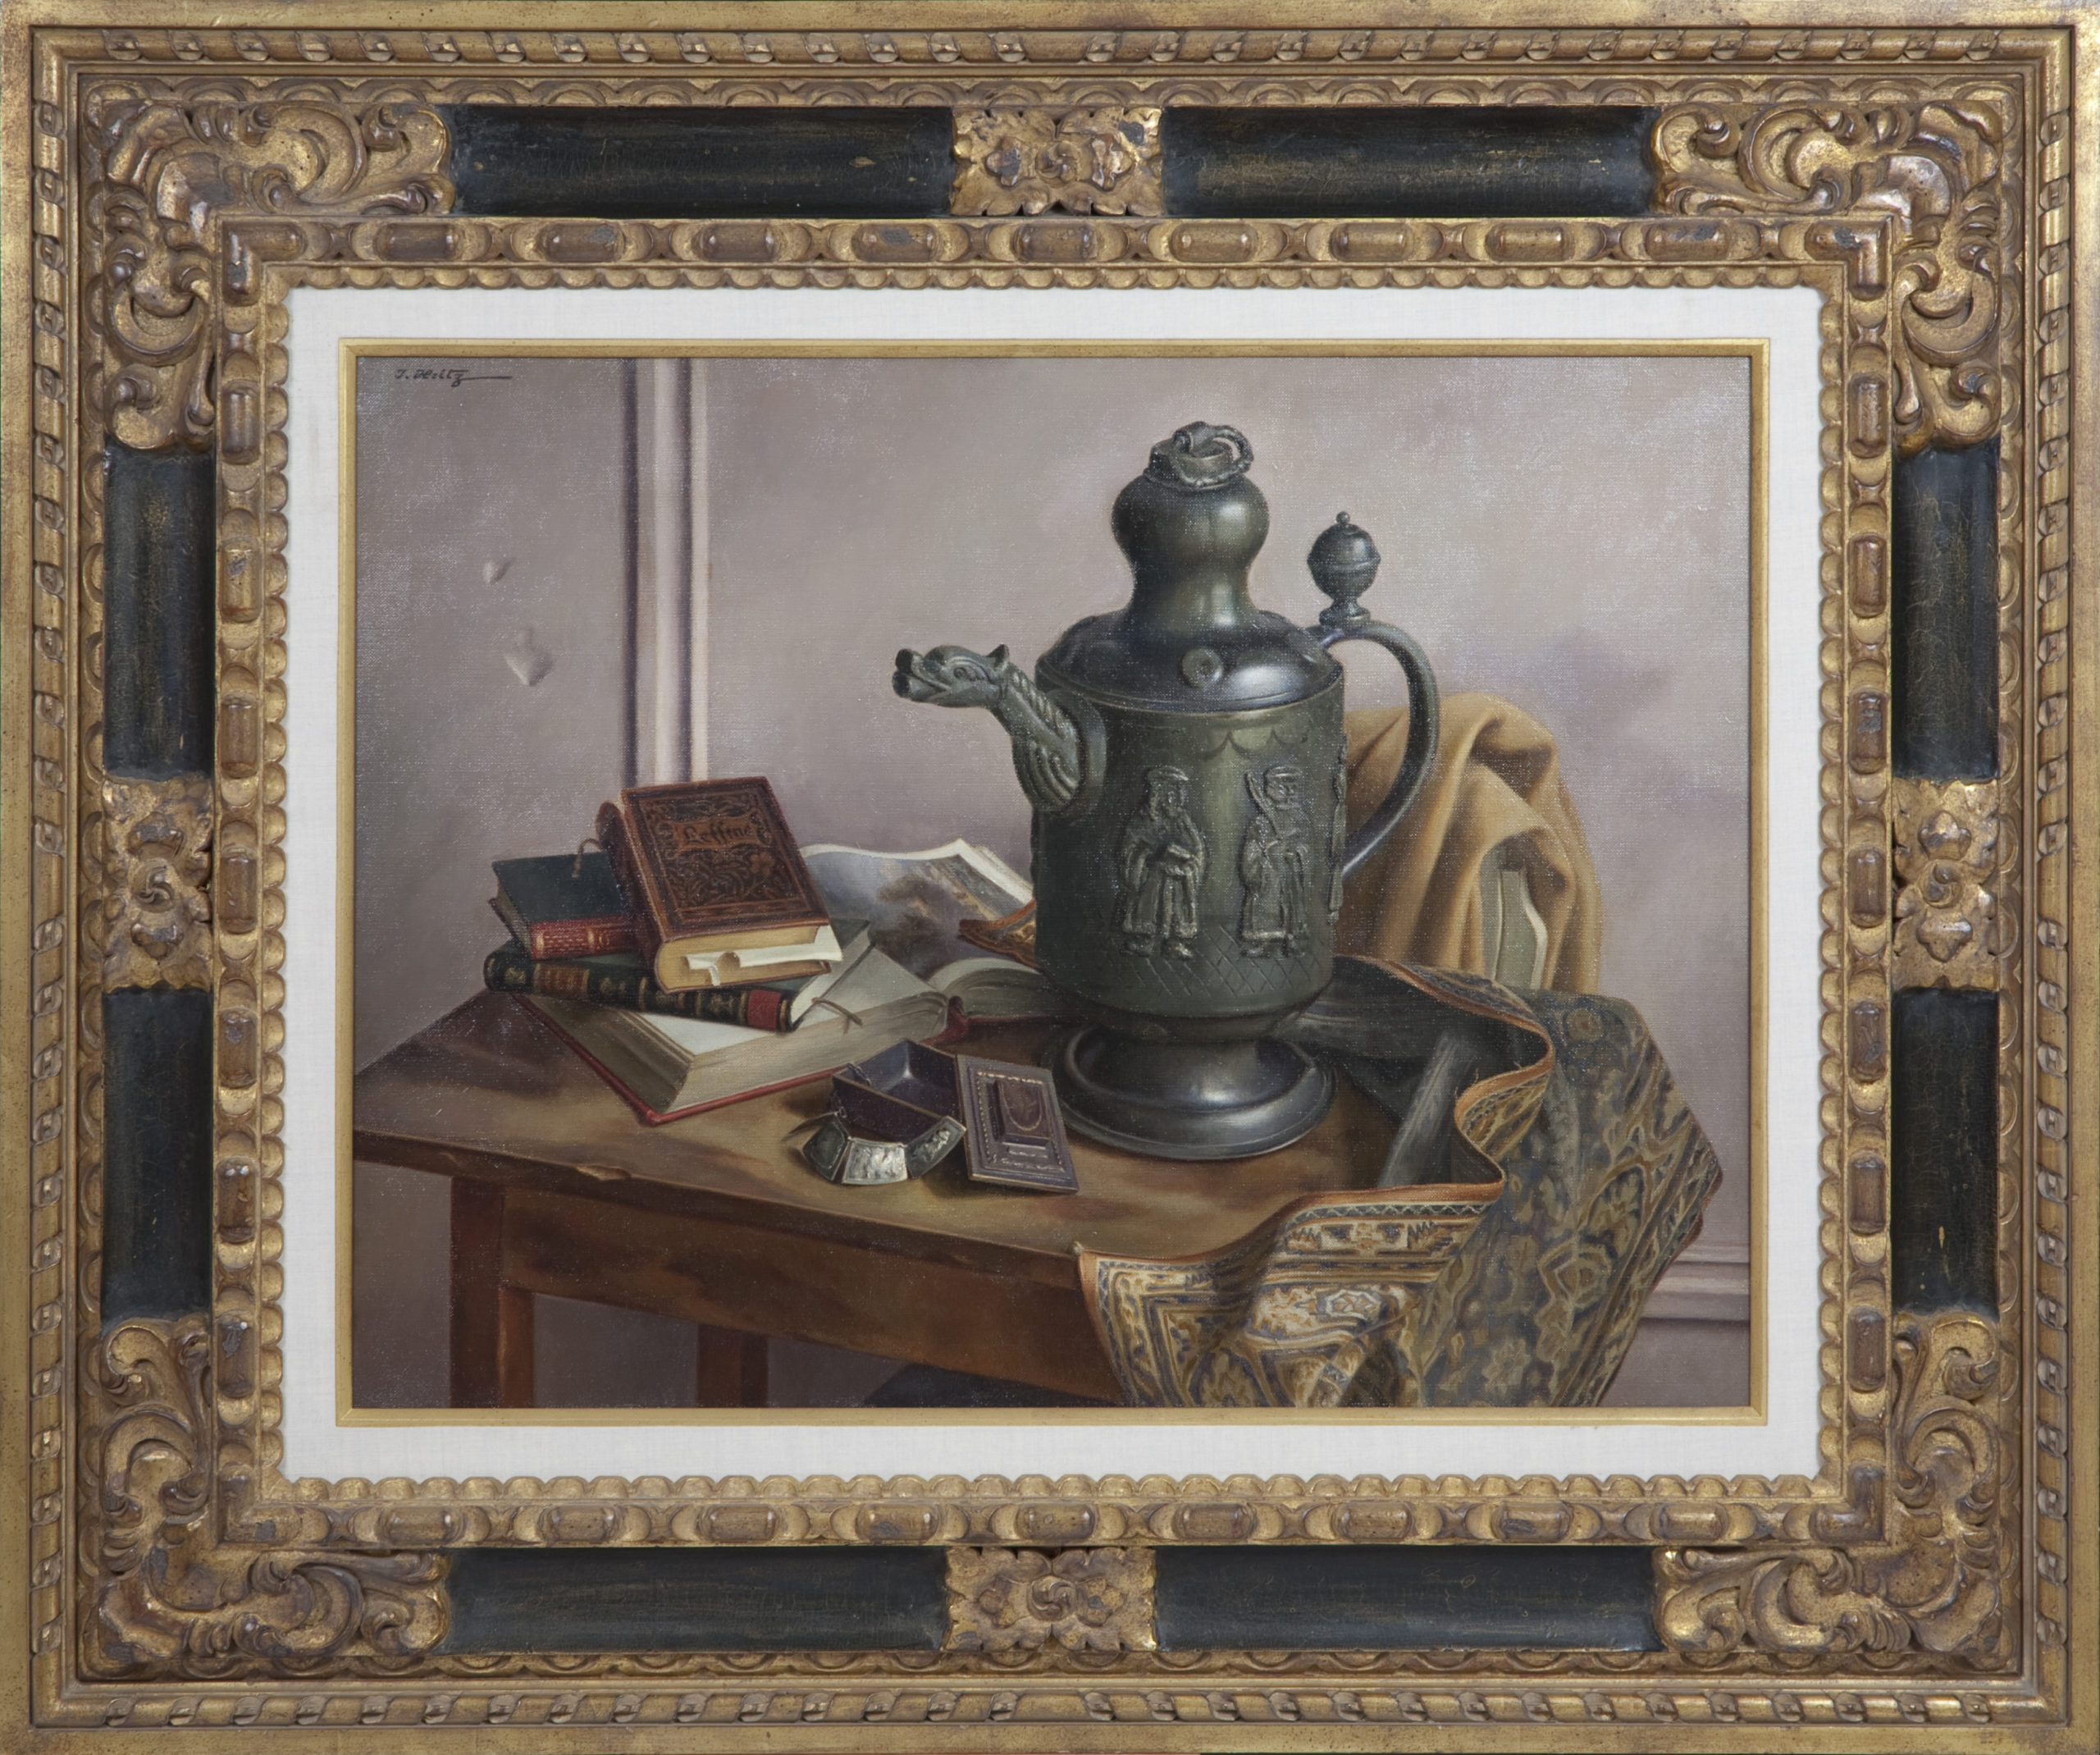 128 Antiques 1953 - Oil on Canvas - 25.9 x 34 - Frame: 50.5 x 42.5 x 3